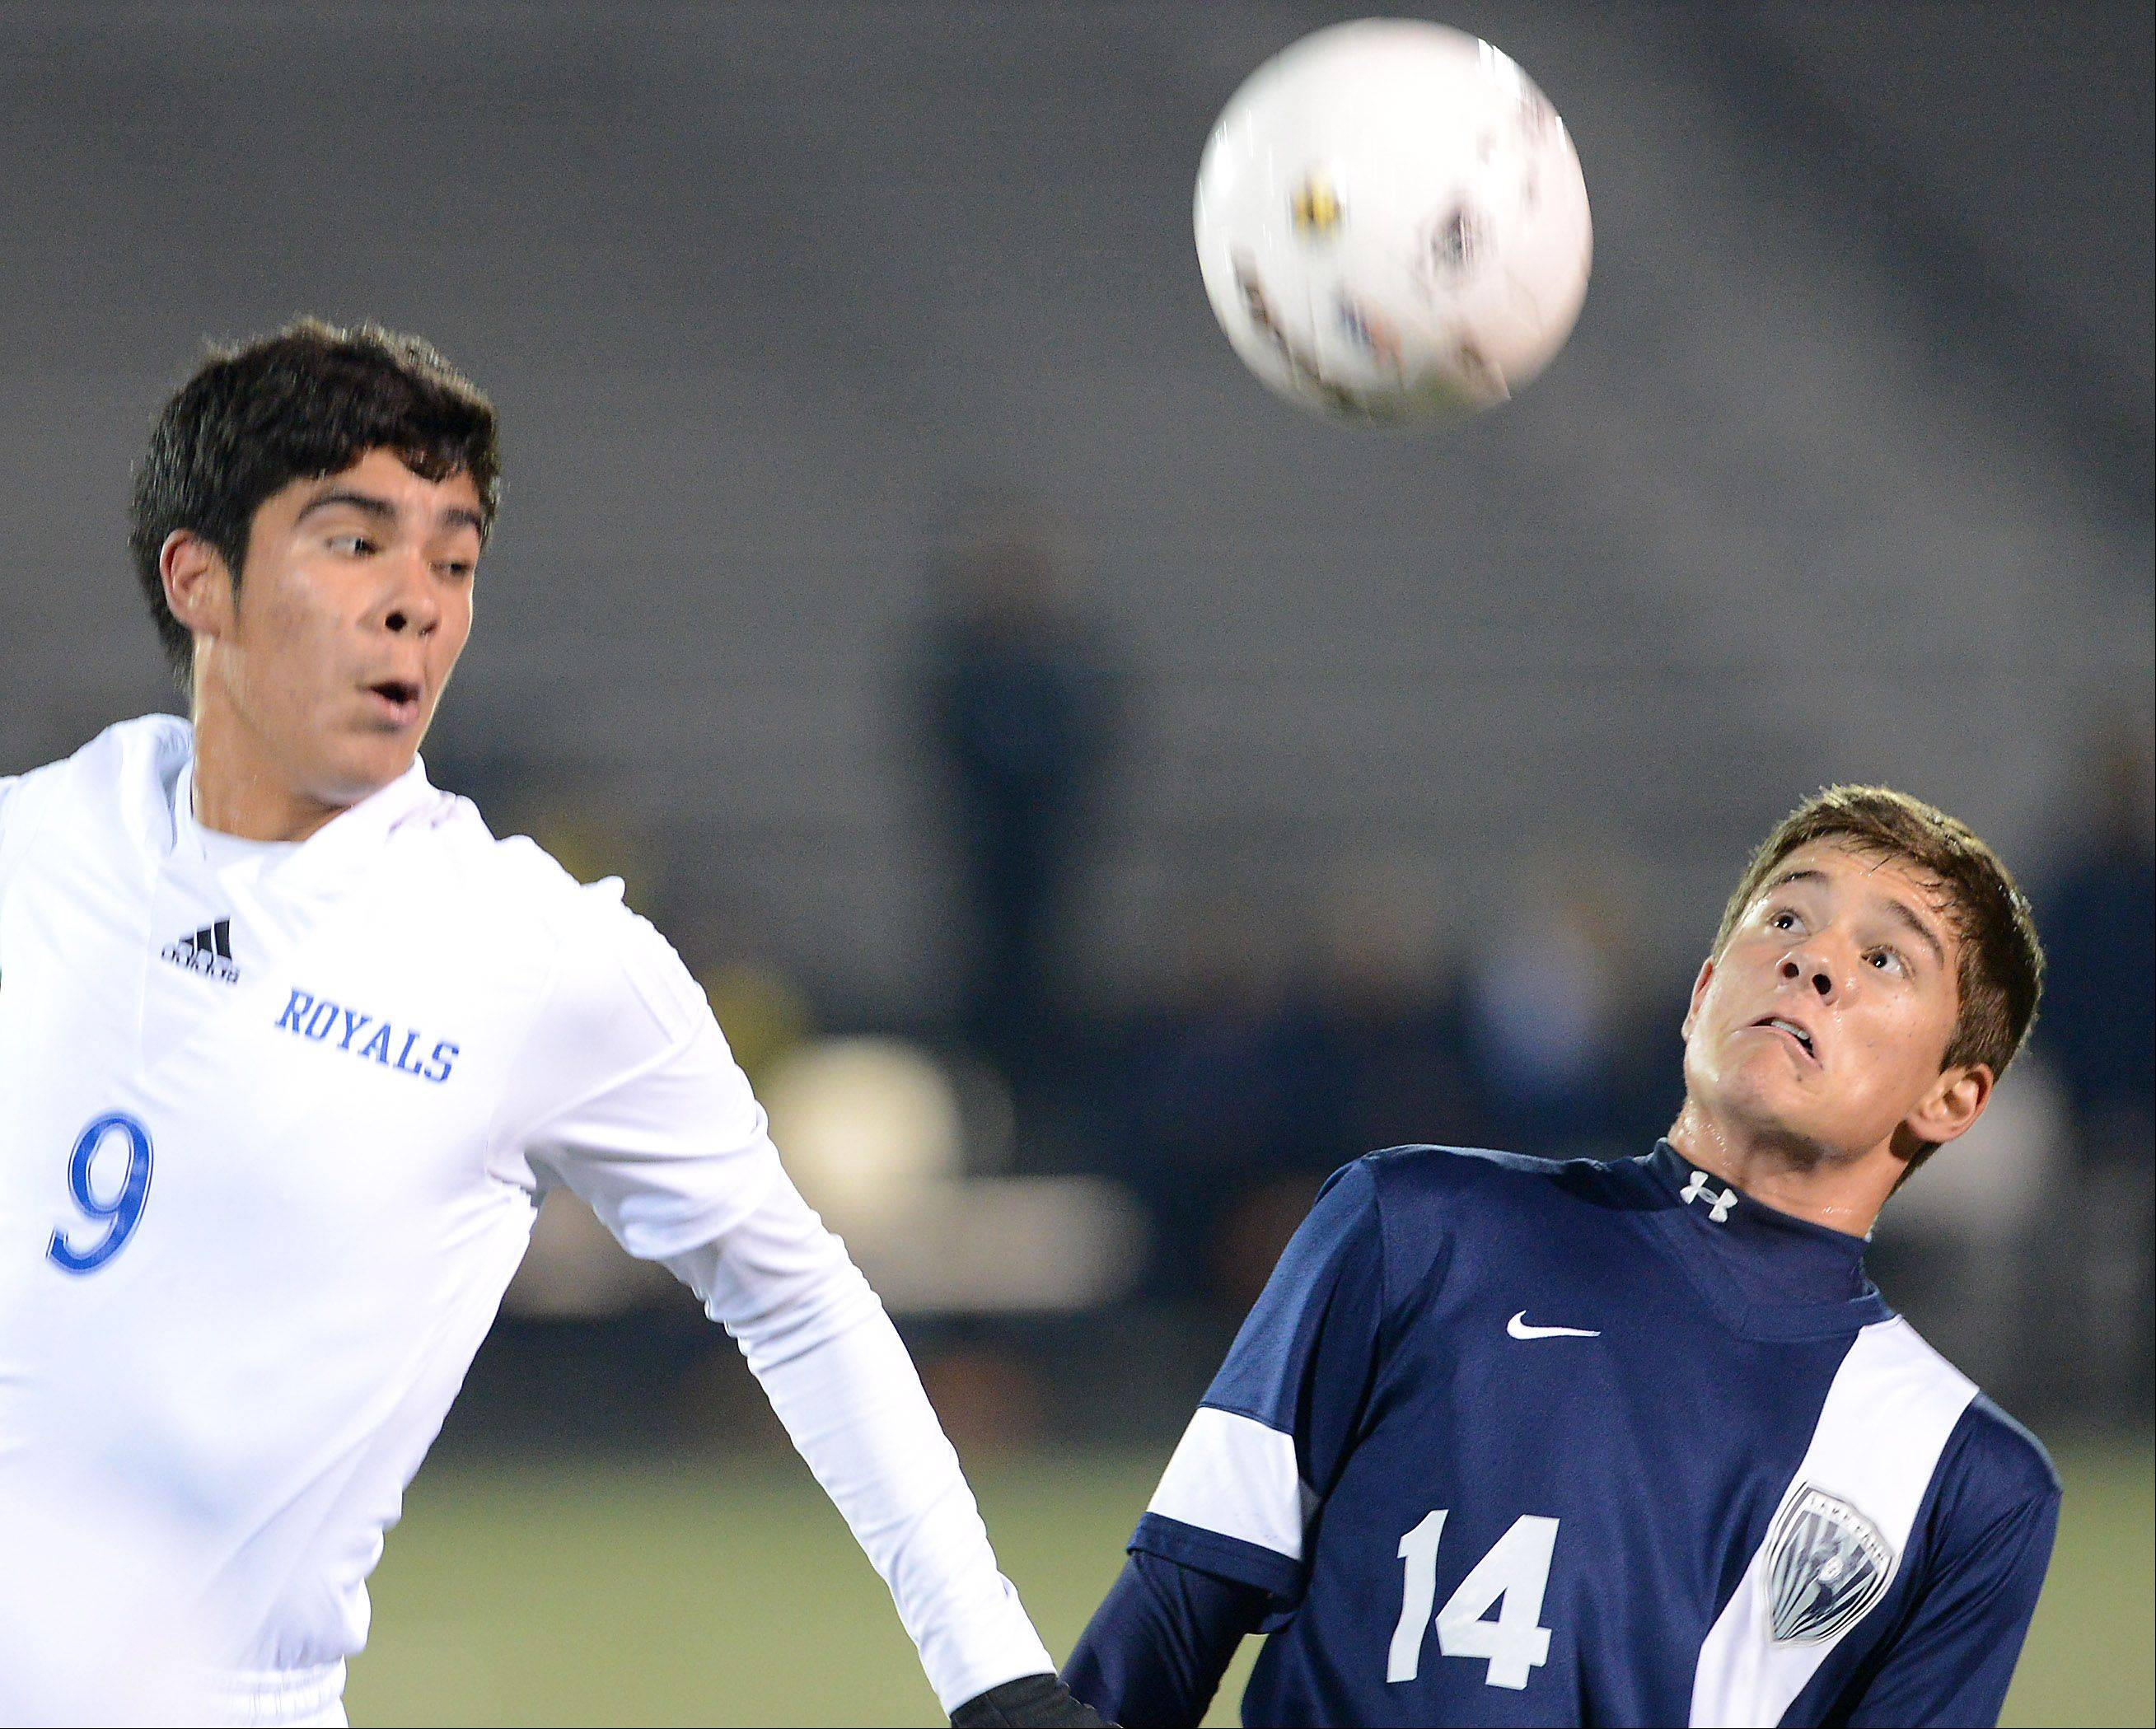 Larkin's Diego Ramirez and Lake Park's Freddy Alvarez go up for a header during Tuesday's supersectional in Streamwood.